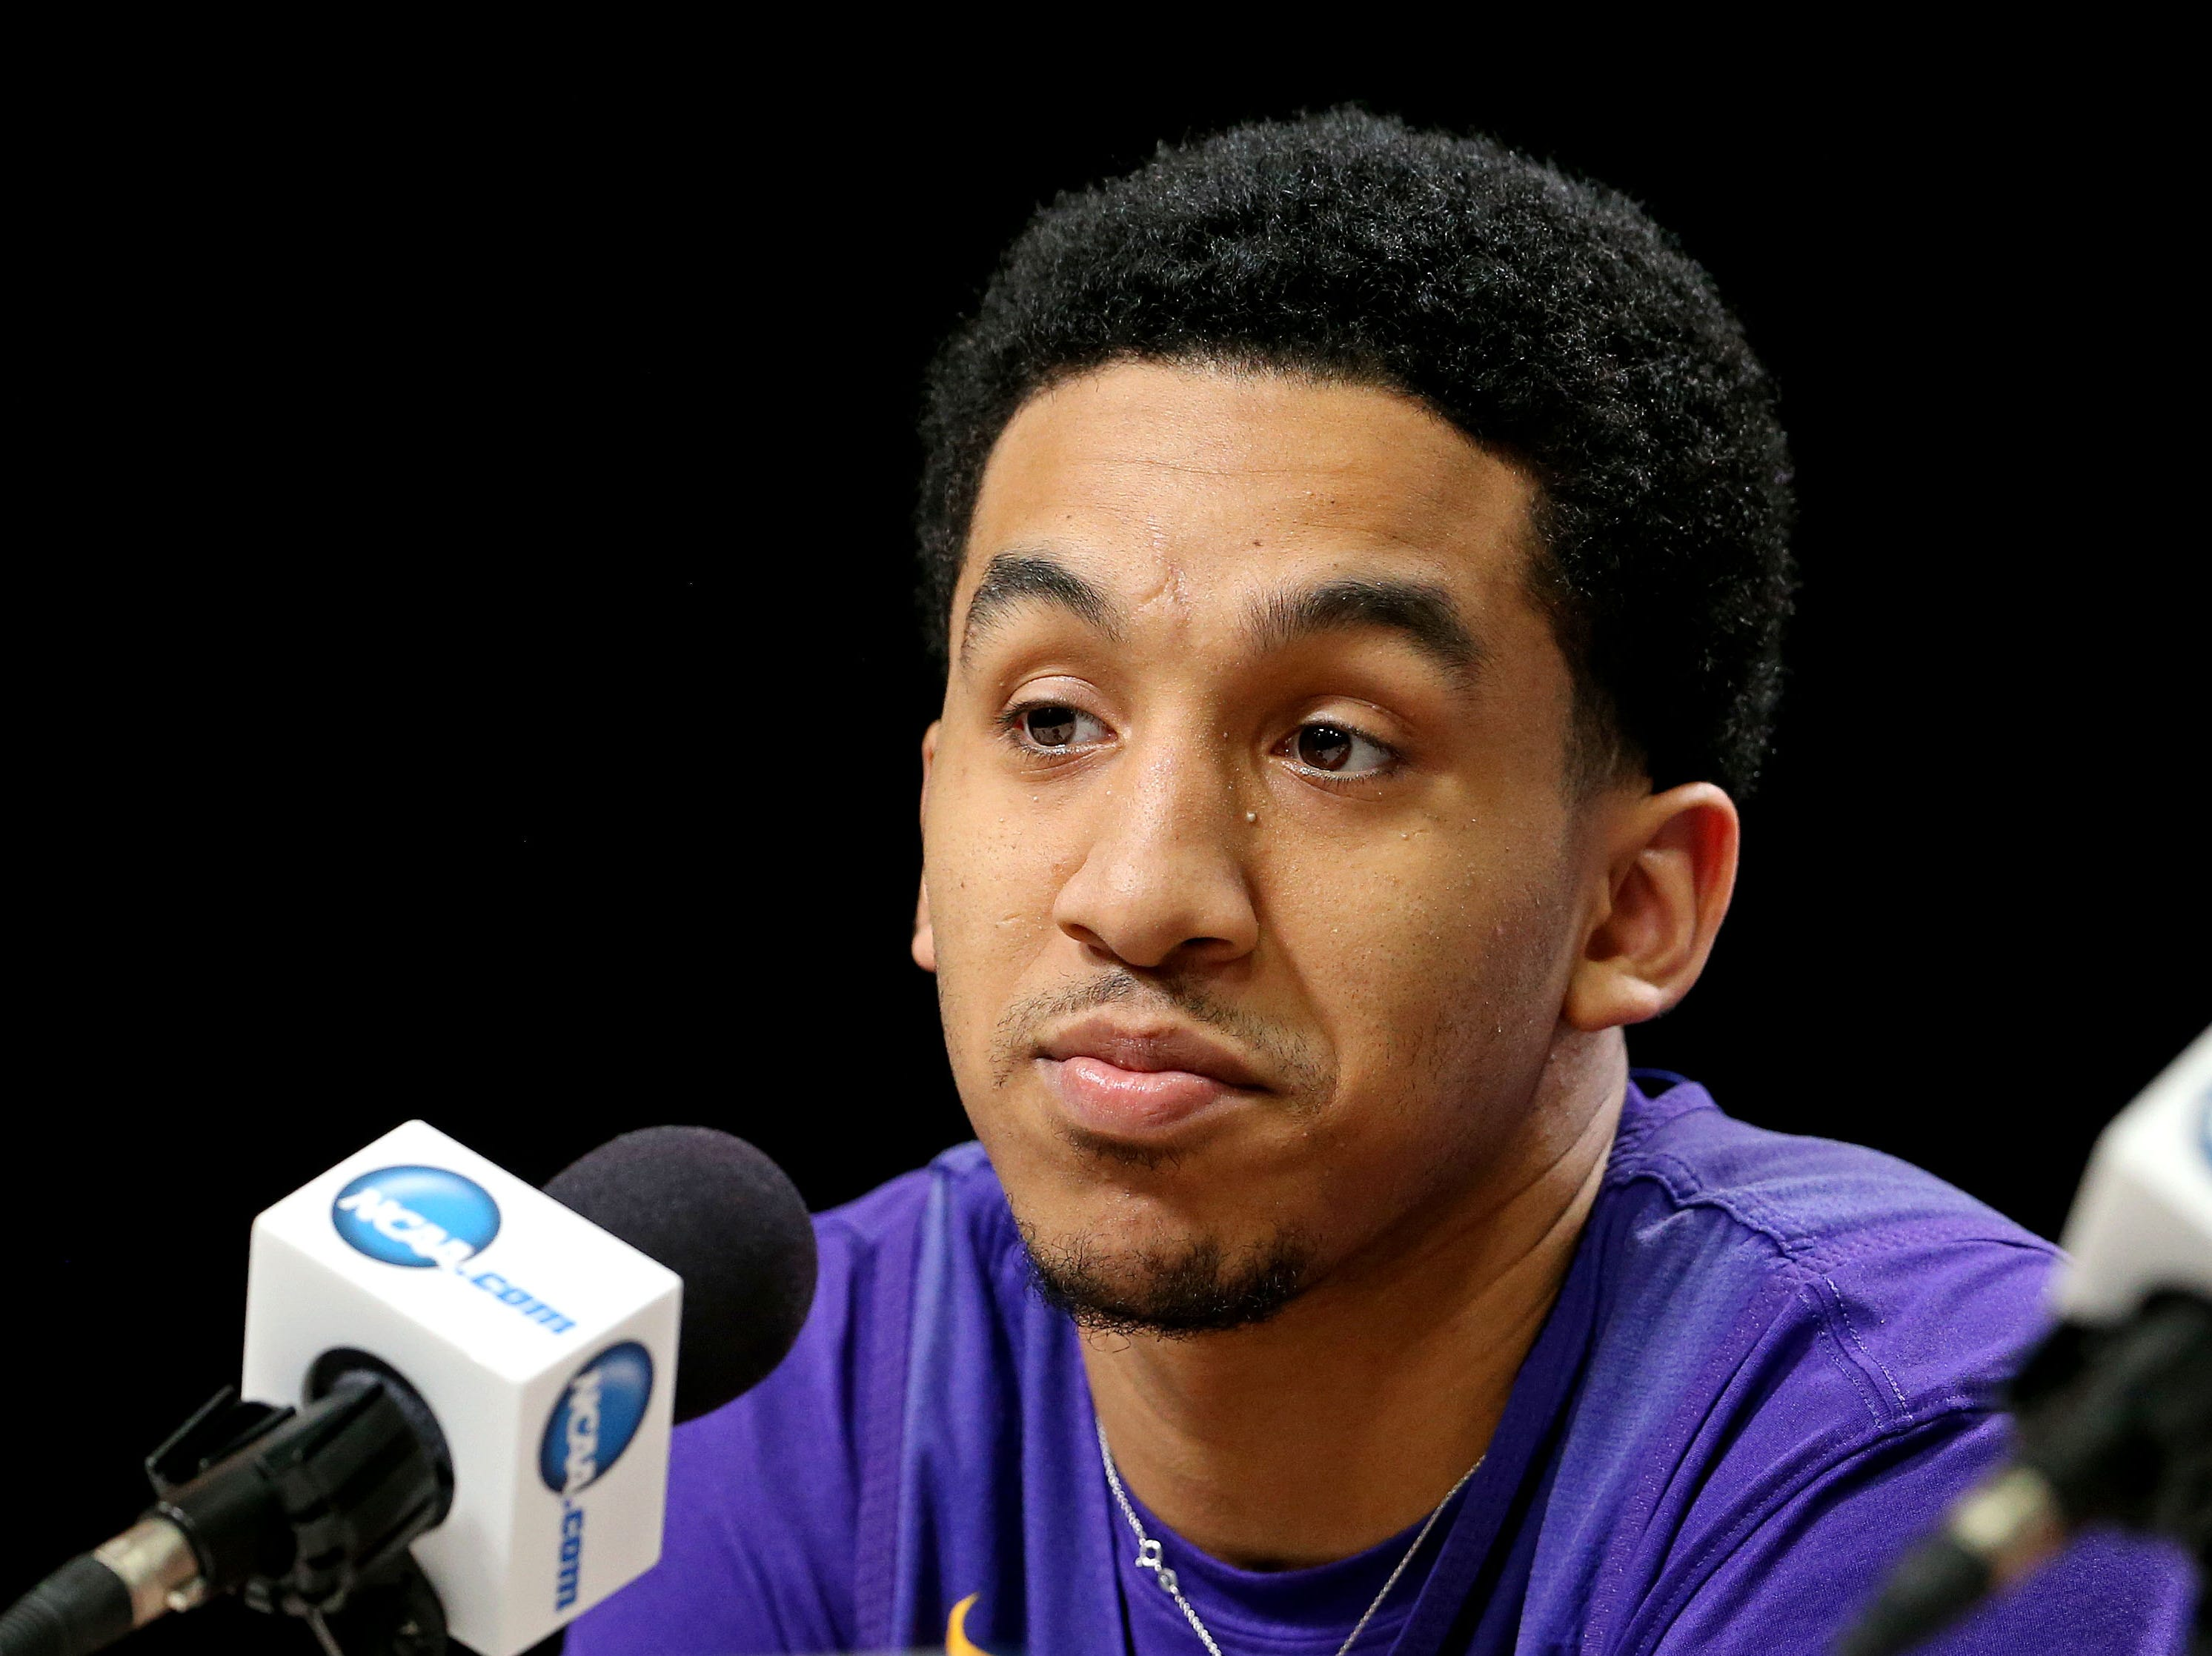 Mar 28, 2019; Washington, DC, USA; LSU Tigers guard Tremont Waters (3) speaks in a press conference during practice for the east regional of the 2019 NCAA Tournament at Capital One Arena. Mandatory Credit: Peter Casey-USA TODAY Sports